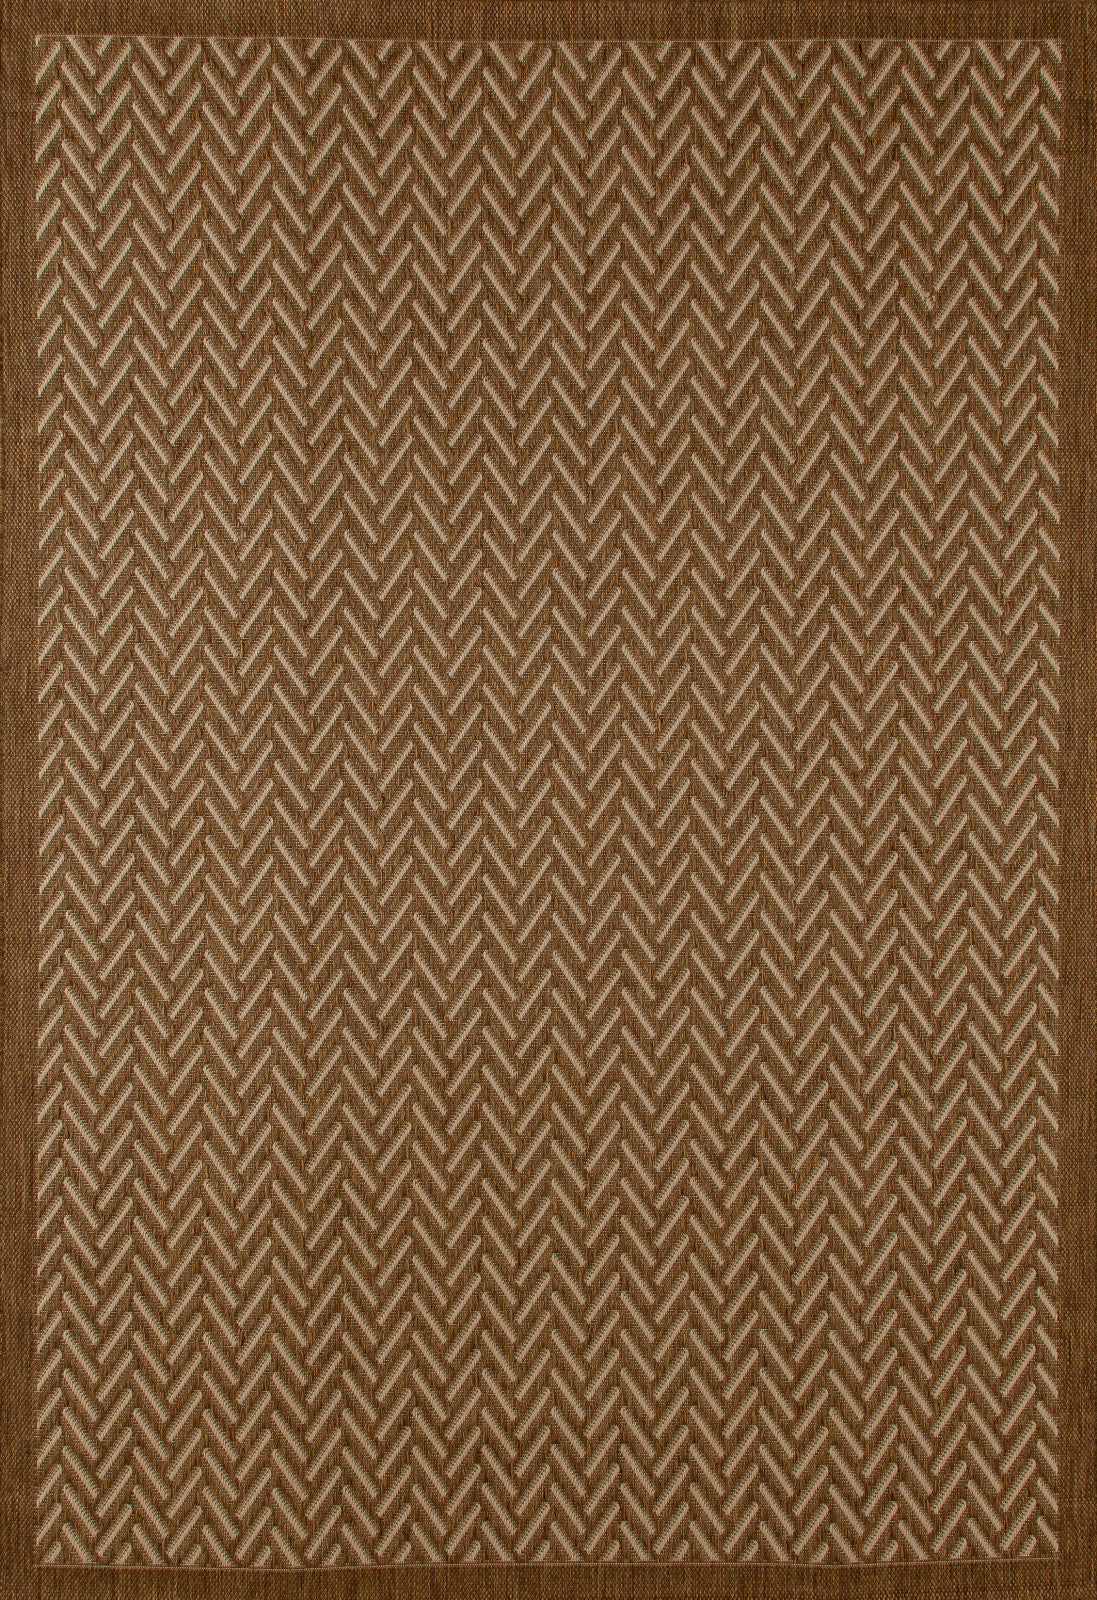 Art Carpet Plymouth SISO-00-019 Brown Area Rug main image